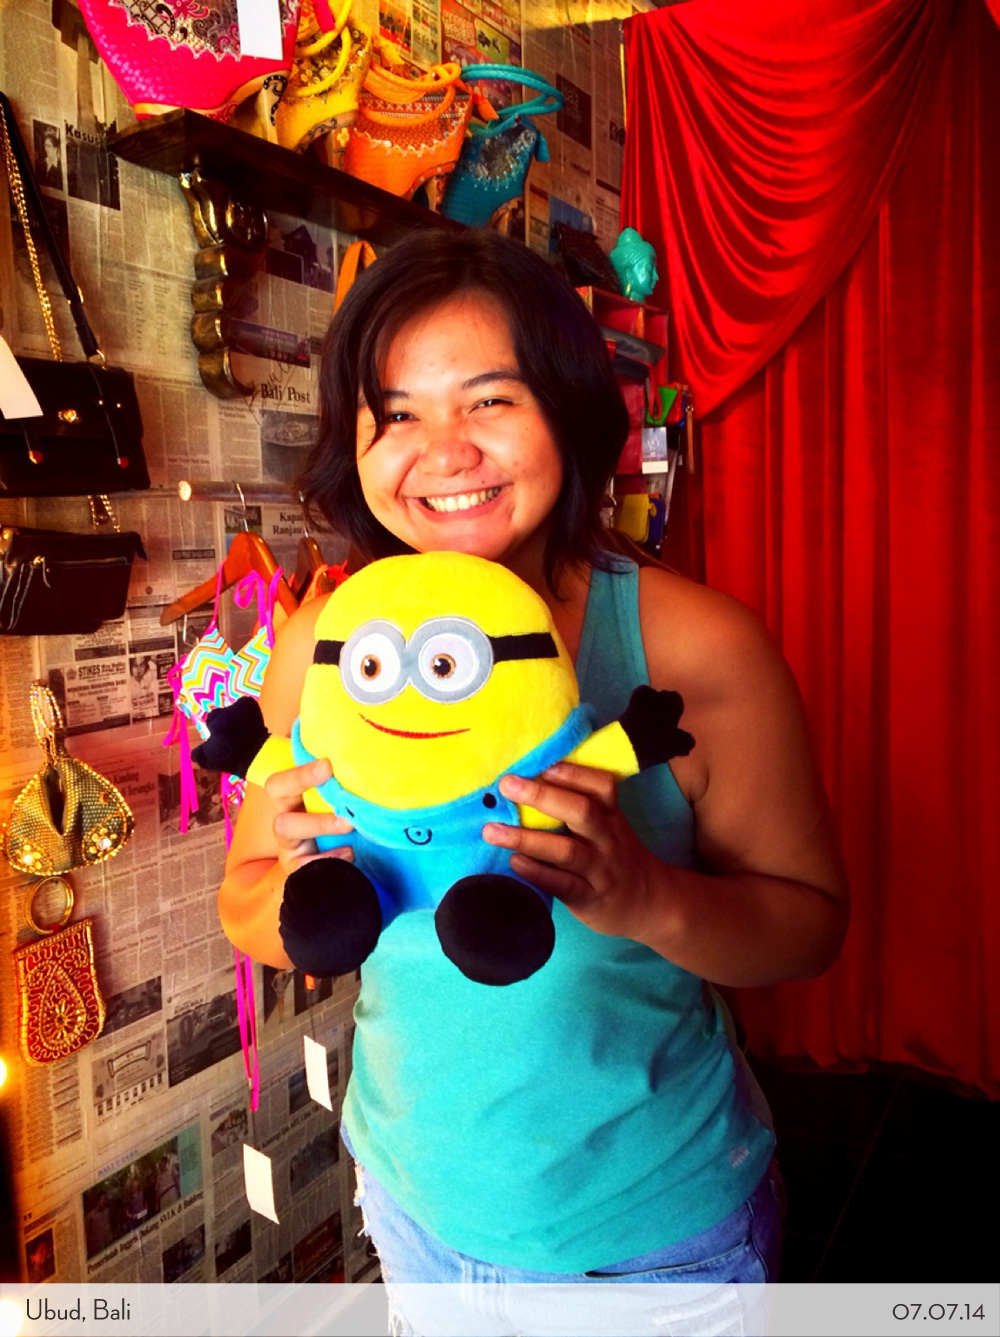 Marina with Minion doll